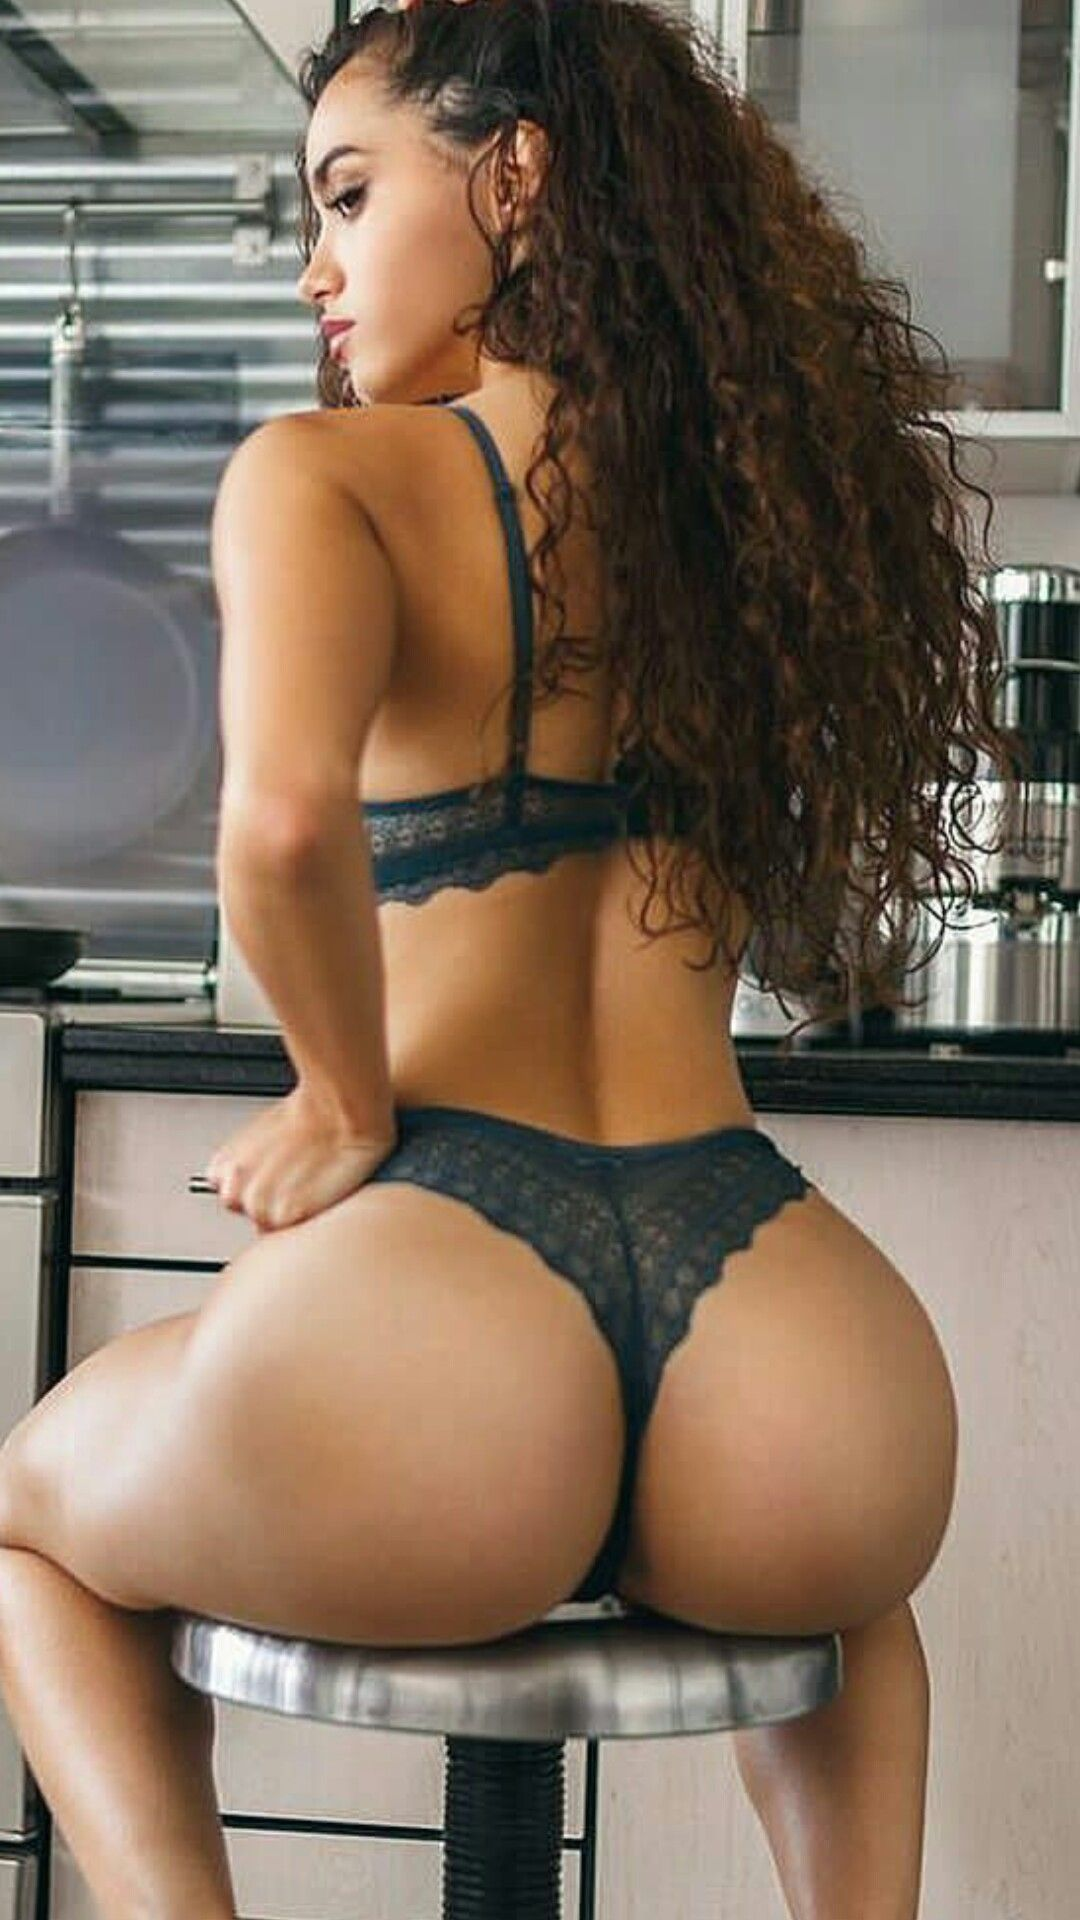 she got ass❤she got ass❤ | vikas | pinterest | lingerie, curves